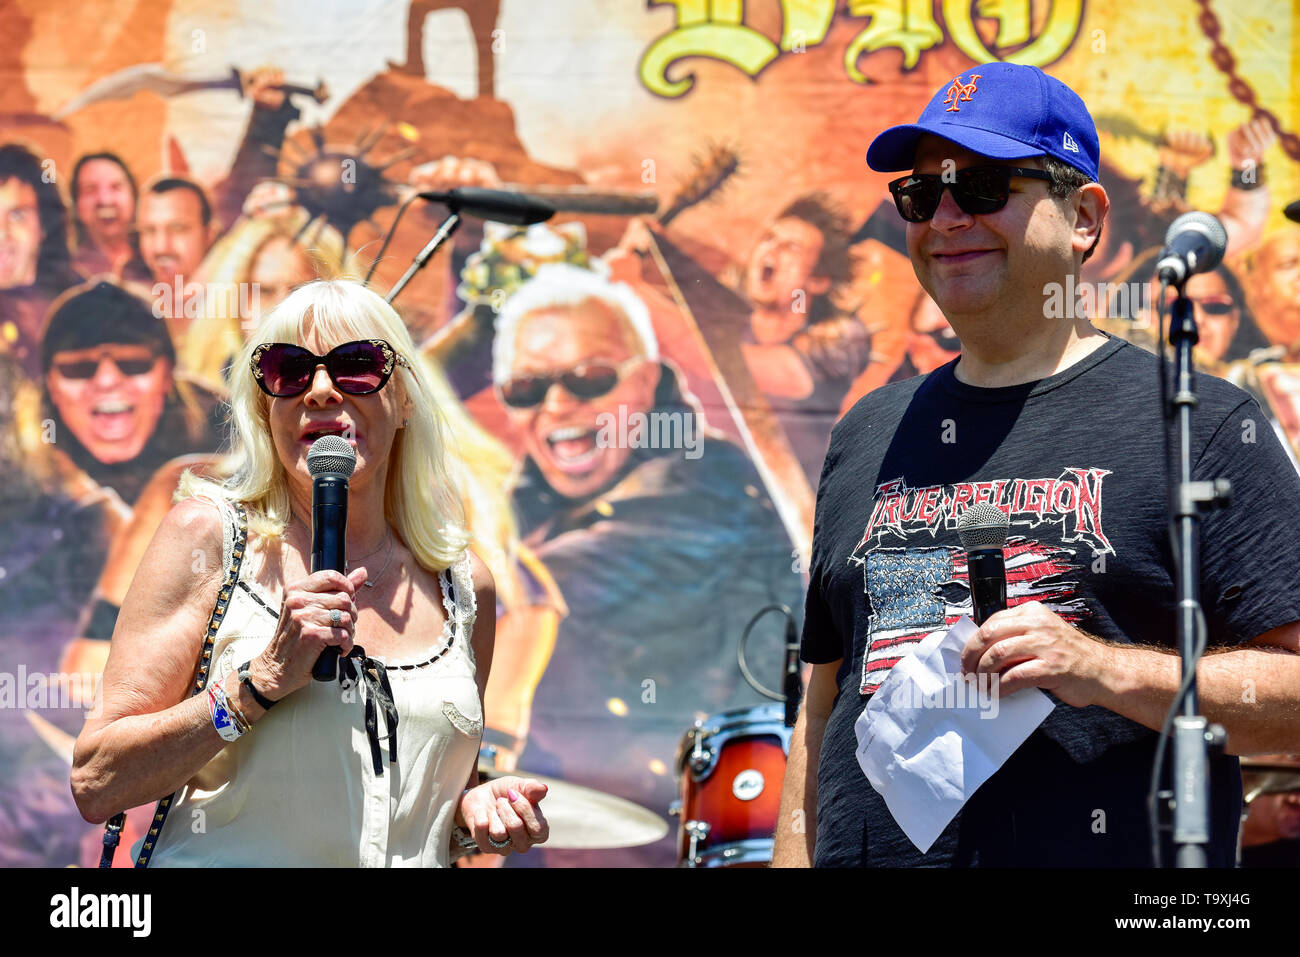 May 5, 2019, Encino, California, Wendy Dio and Eddie Trunk on stage at the 2019 Ride for Ronnie charity concert at Los Encinos State Historic Park. Stock Photo